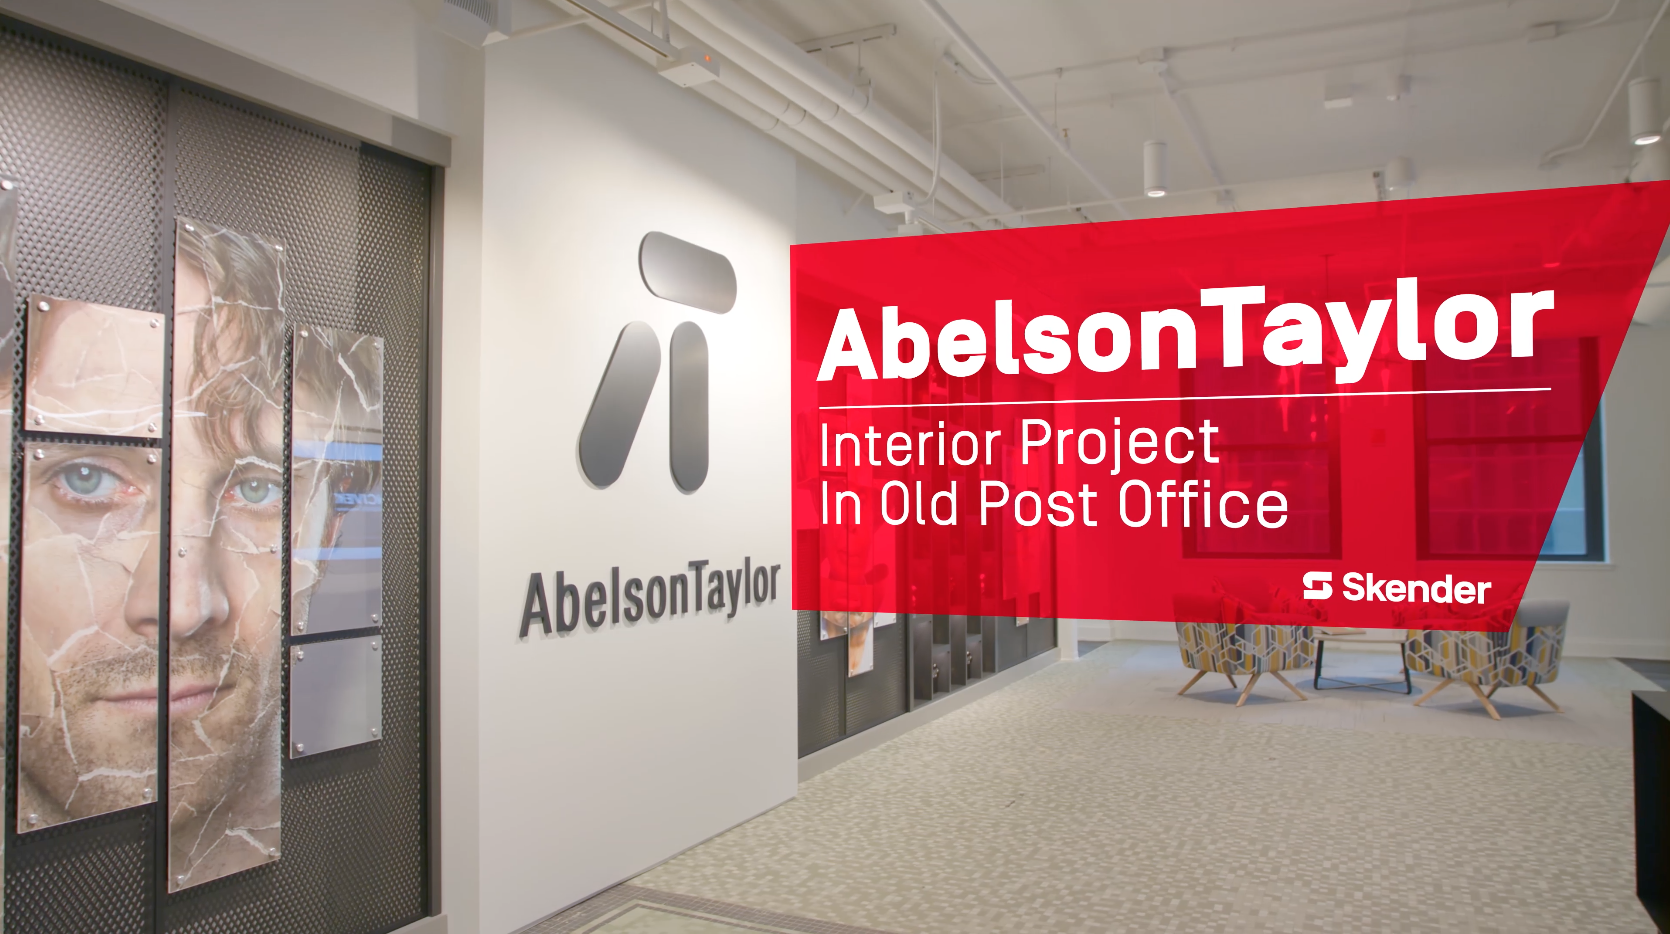 AbelsonTaylor Interior Project